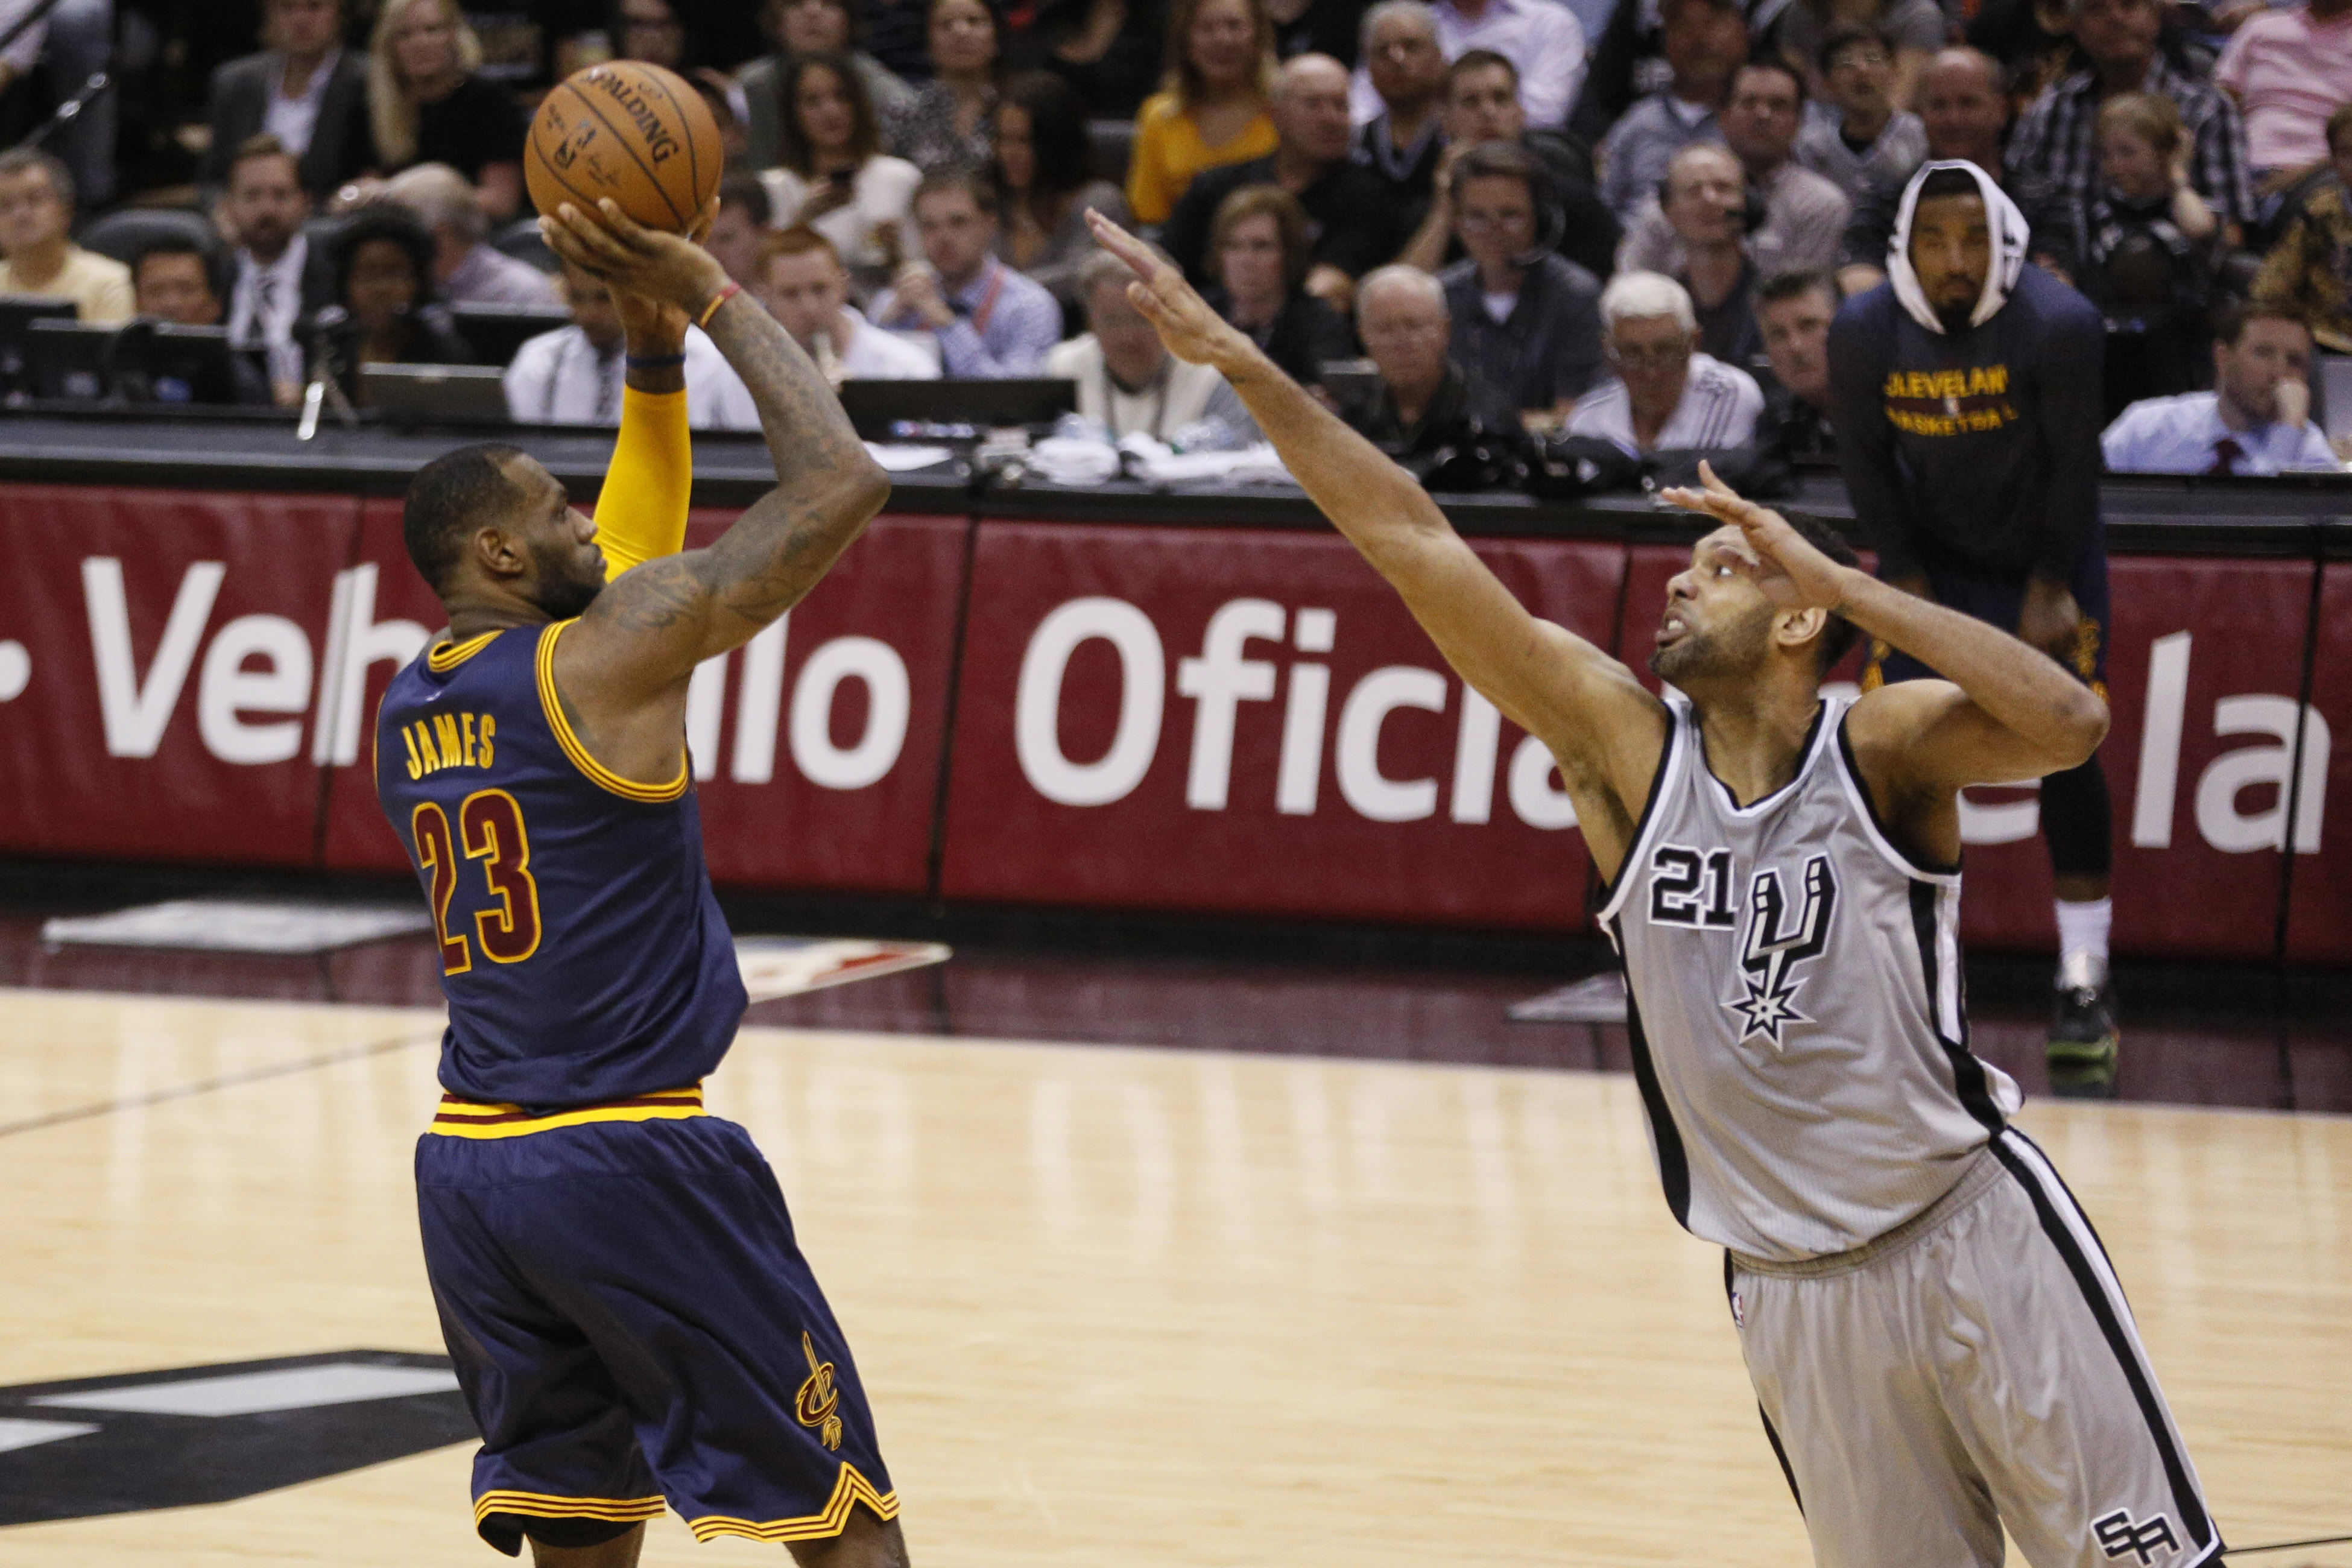 8441088-nba-cleveland-cavaliers-at-san-antonio-spurs